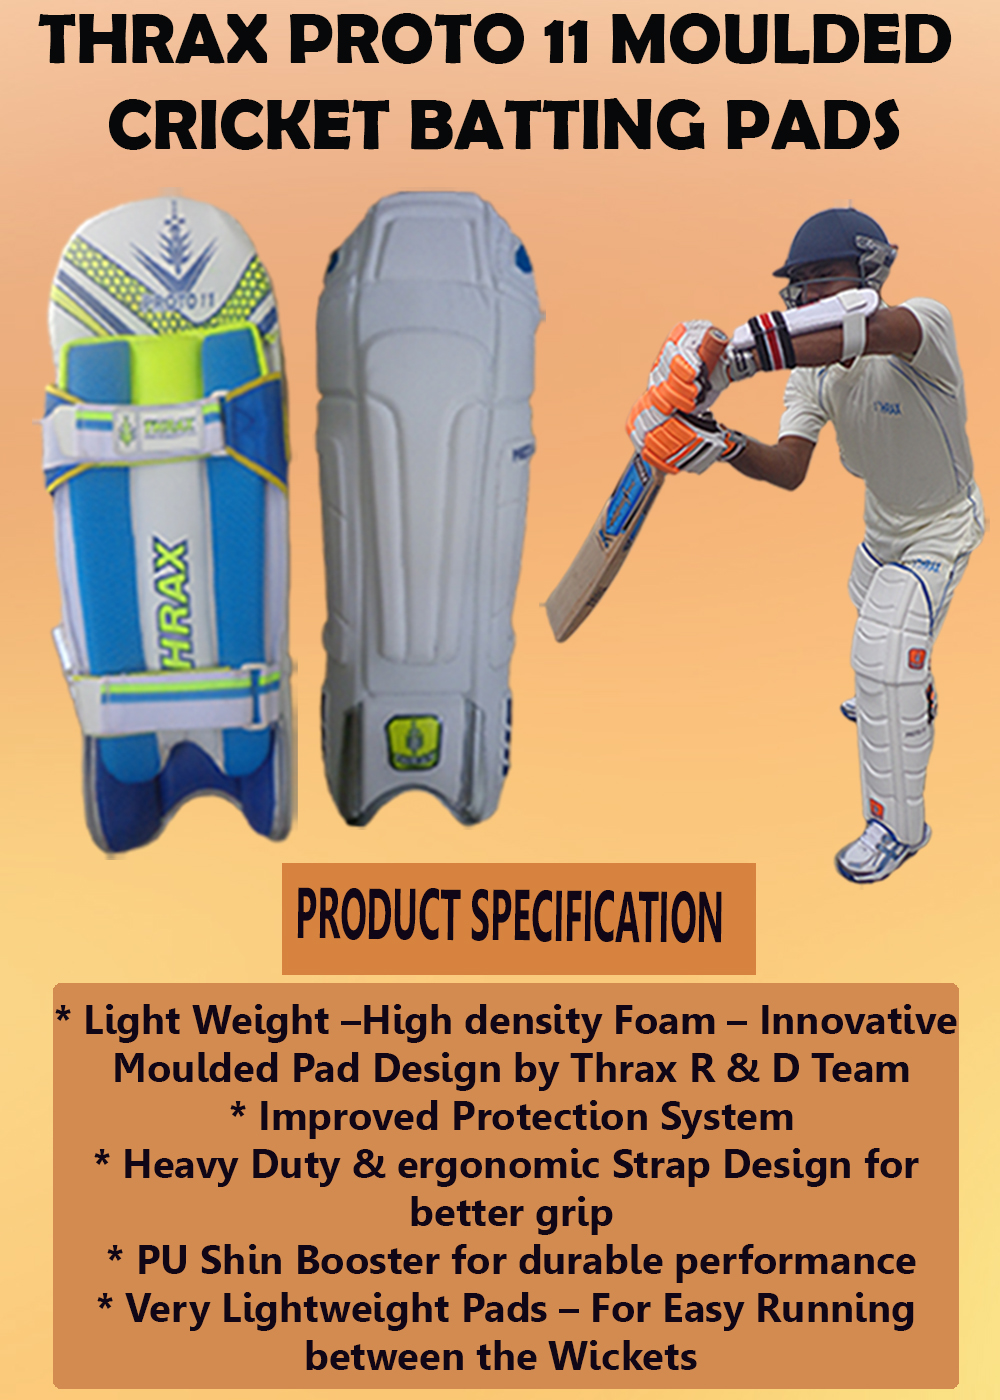 Thrax Proto 11 Moulded Cricket Batting Pads_6